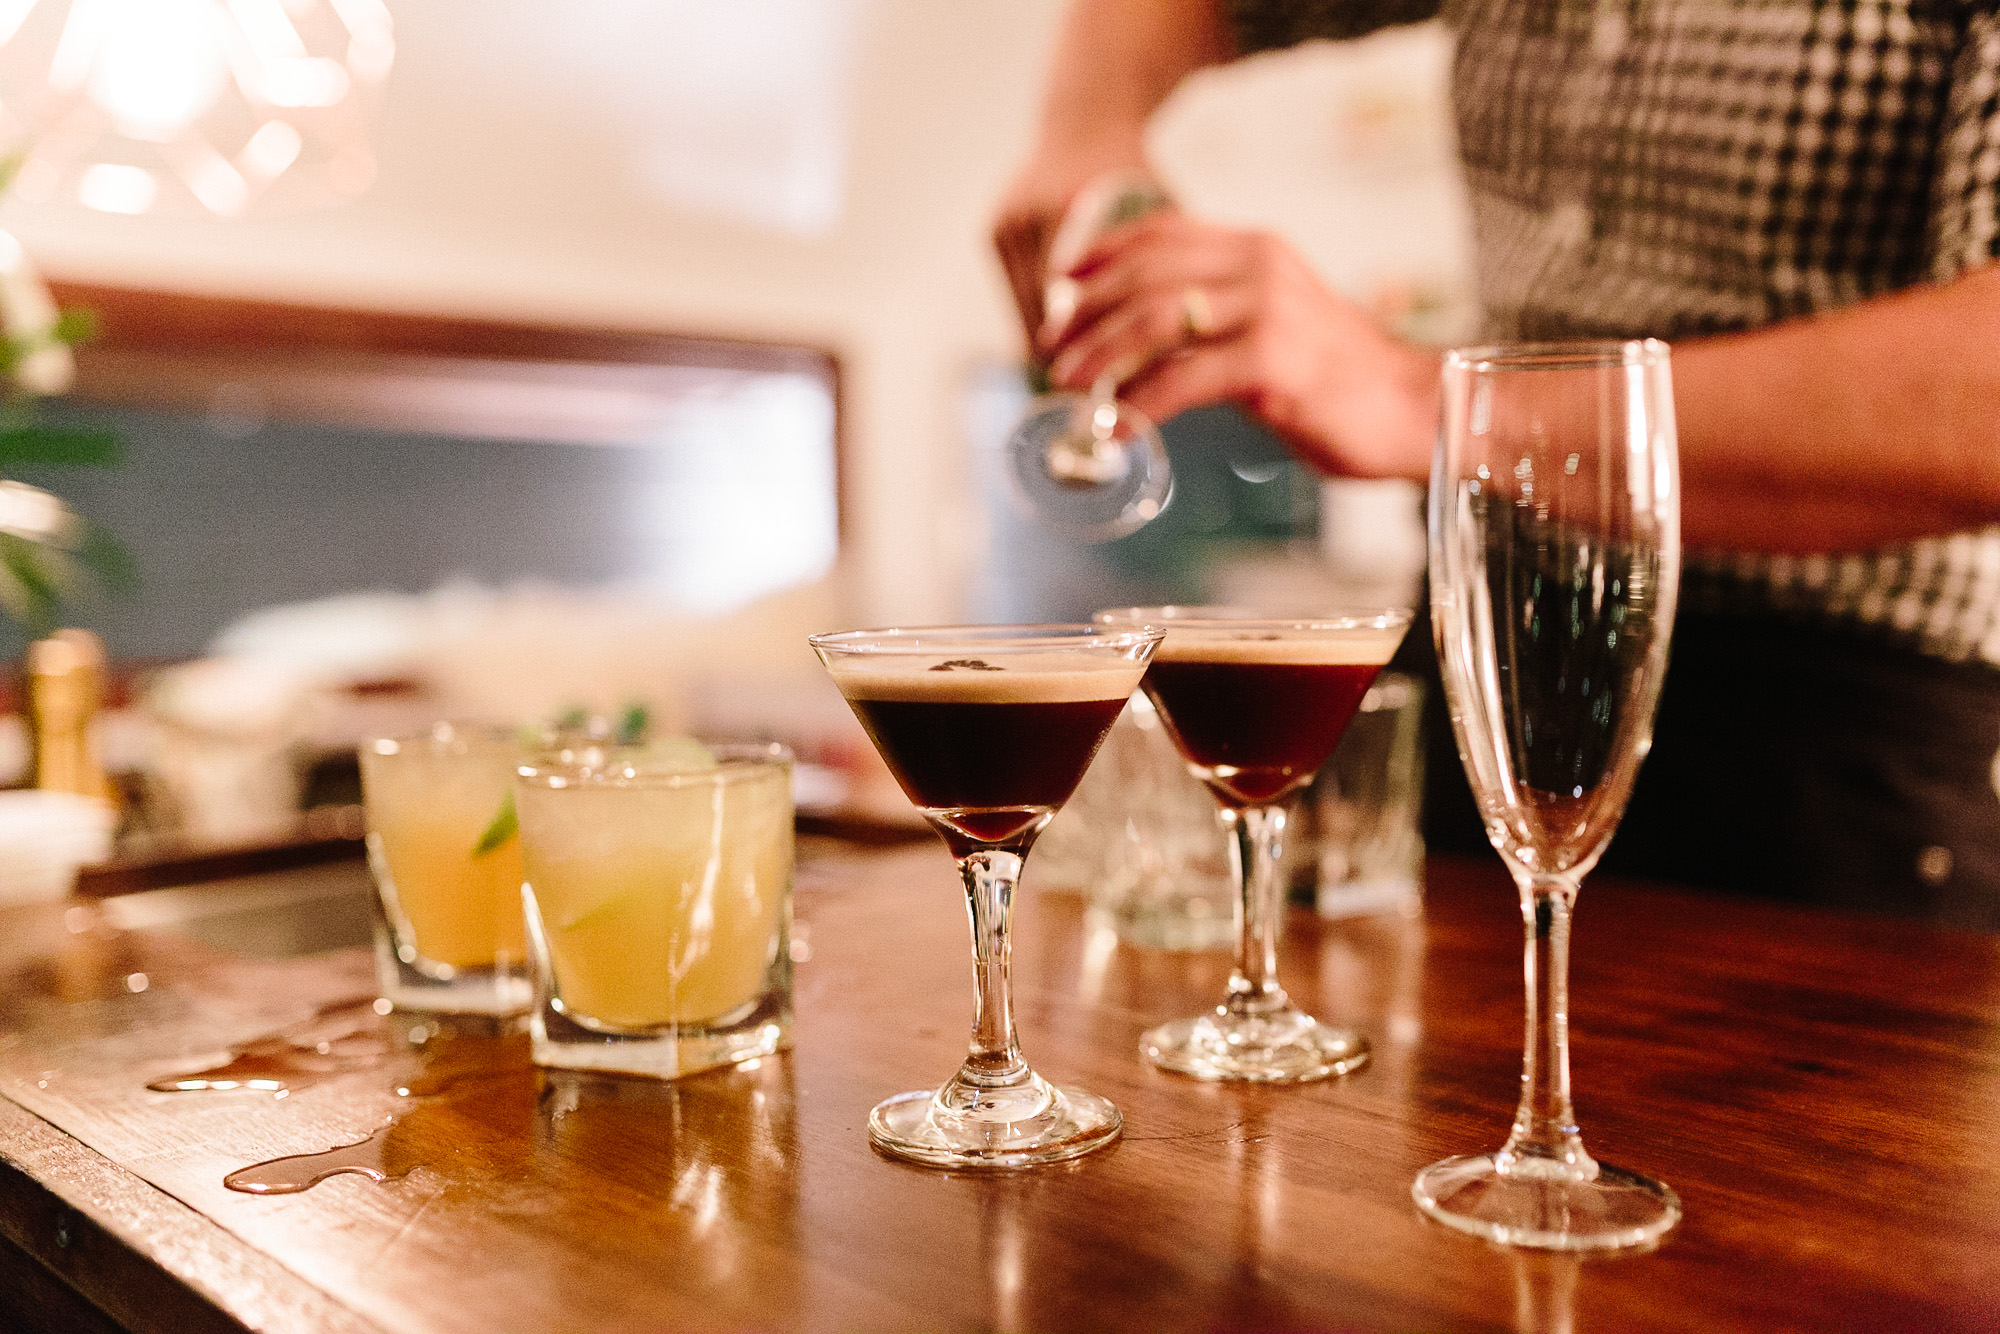 Fresh Espresso - Looking to make espresso martini'sWe offer freshly ground espresso coffee for your eventready to be shaken!Min 80 serves$2.00 +GST Per Serve